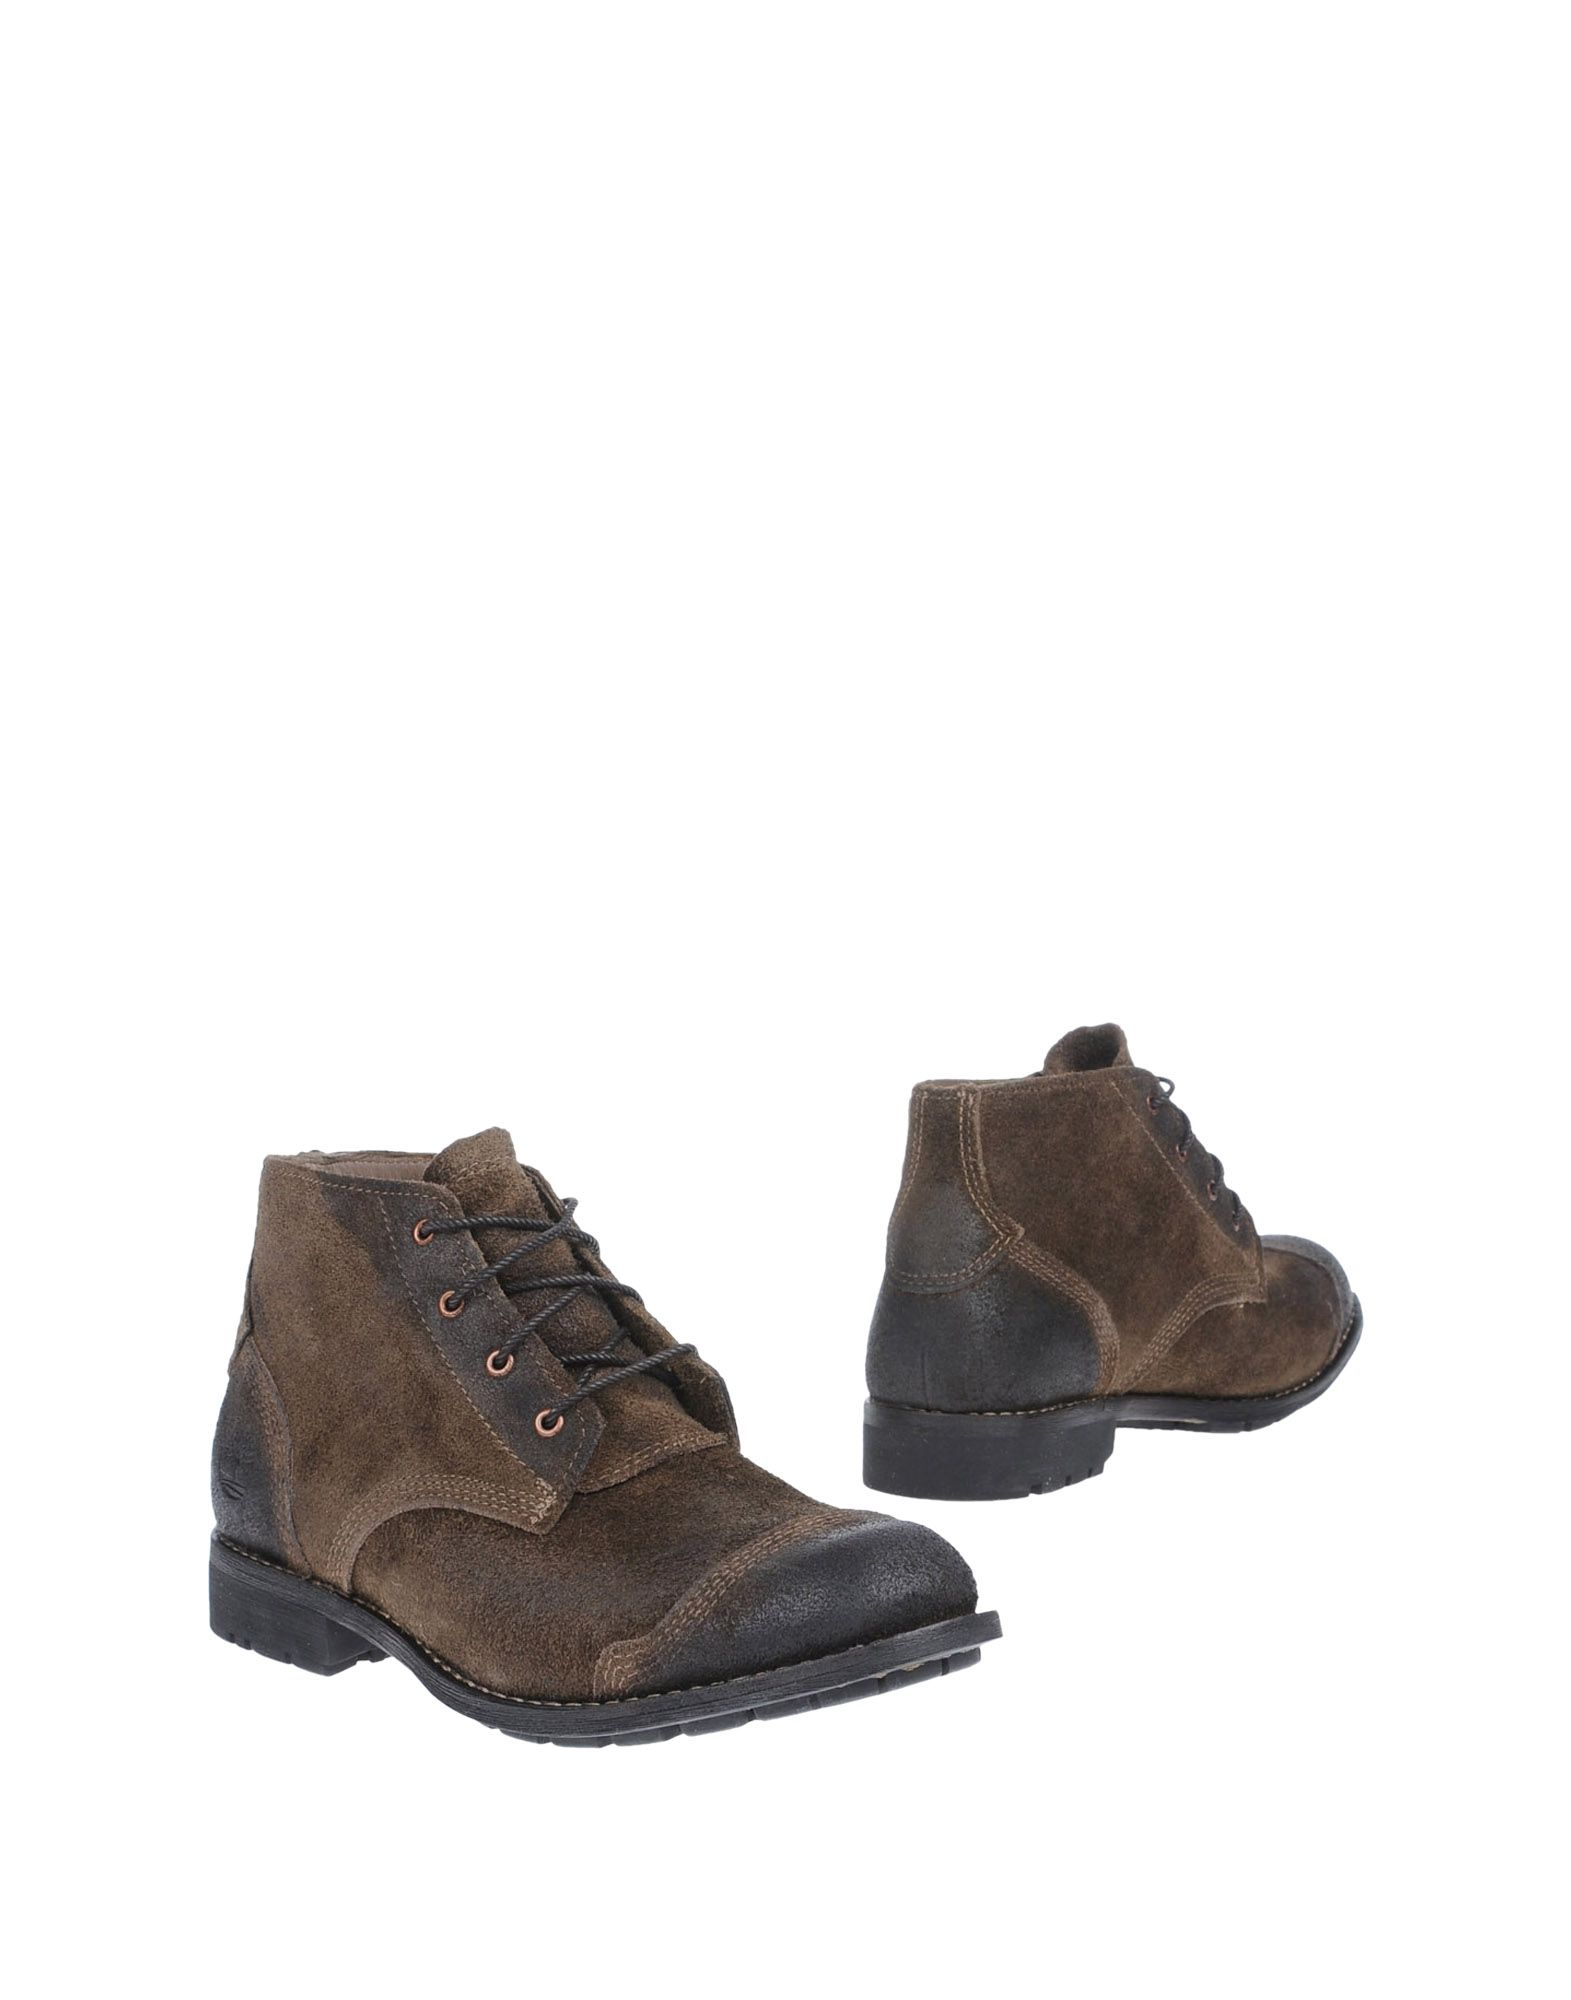 Foto Earthkeepers By Timberland Botas Con Cordones Hombre Caqui